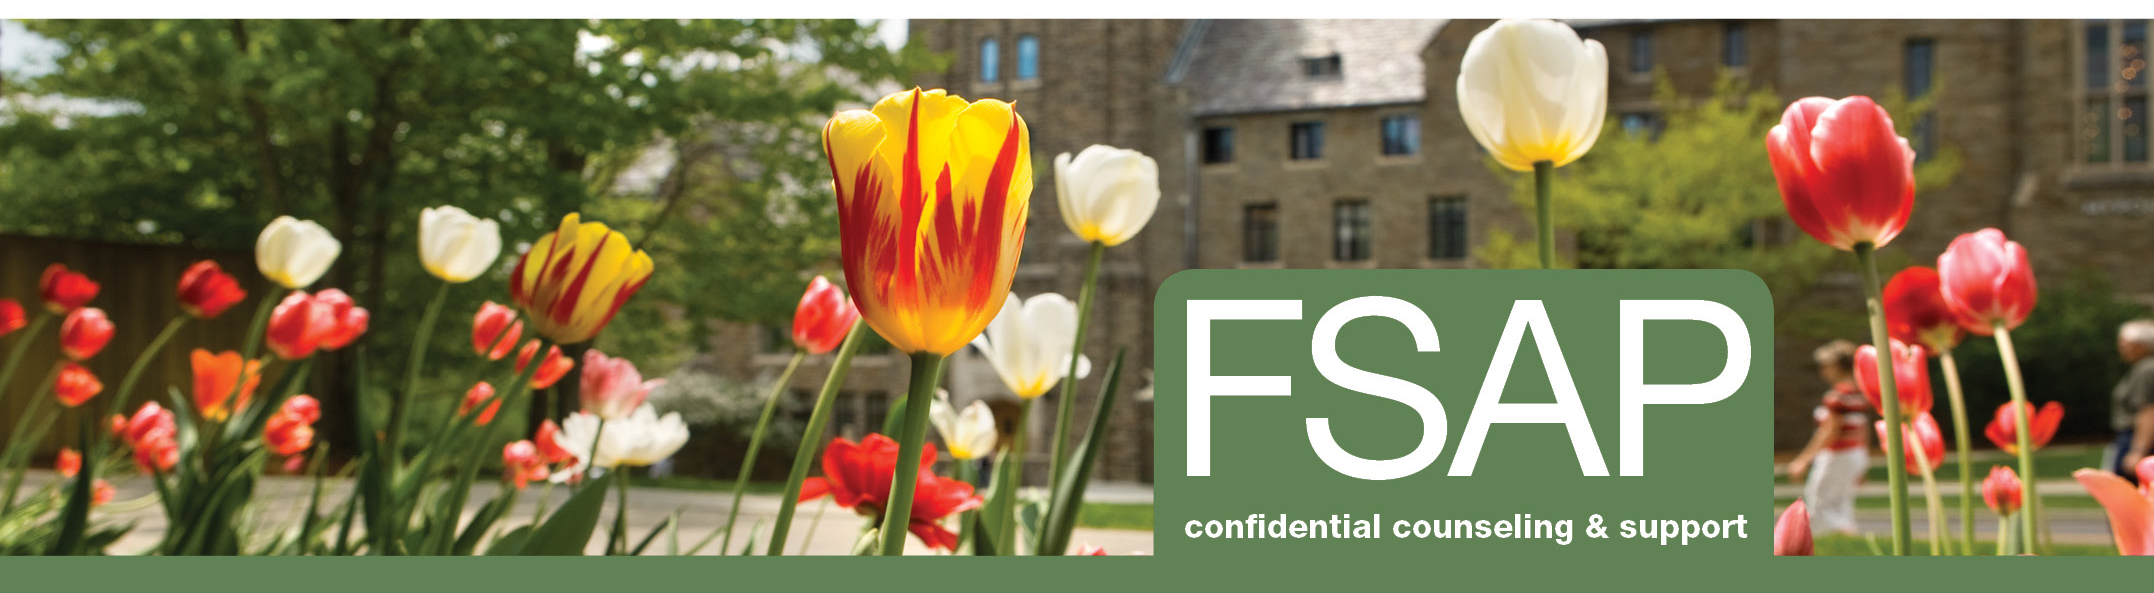 FSAP: confidential counseling & support